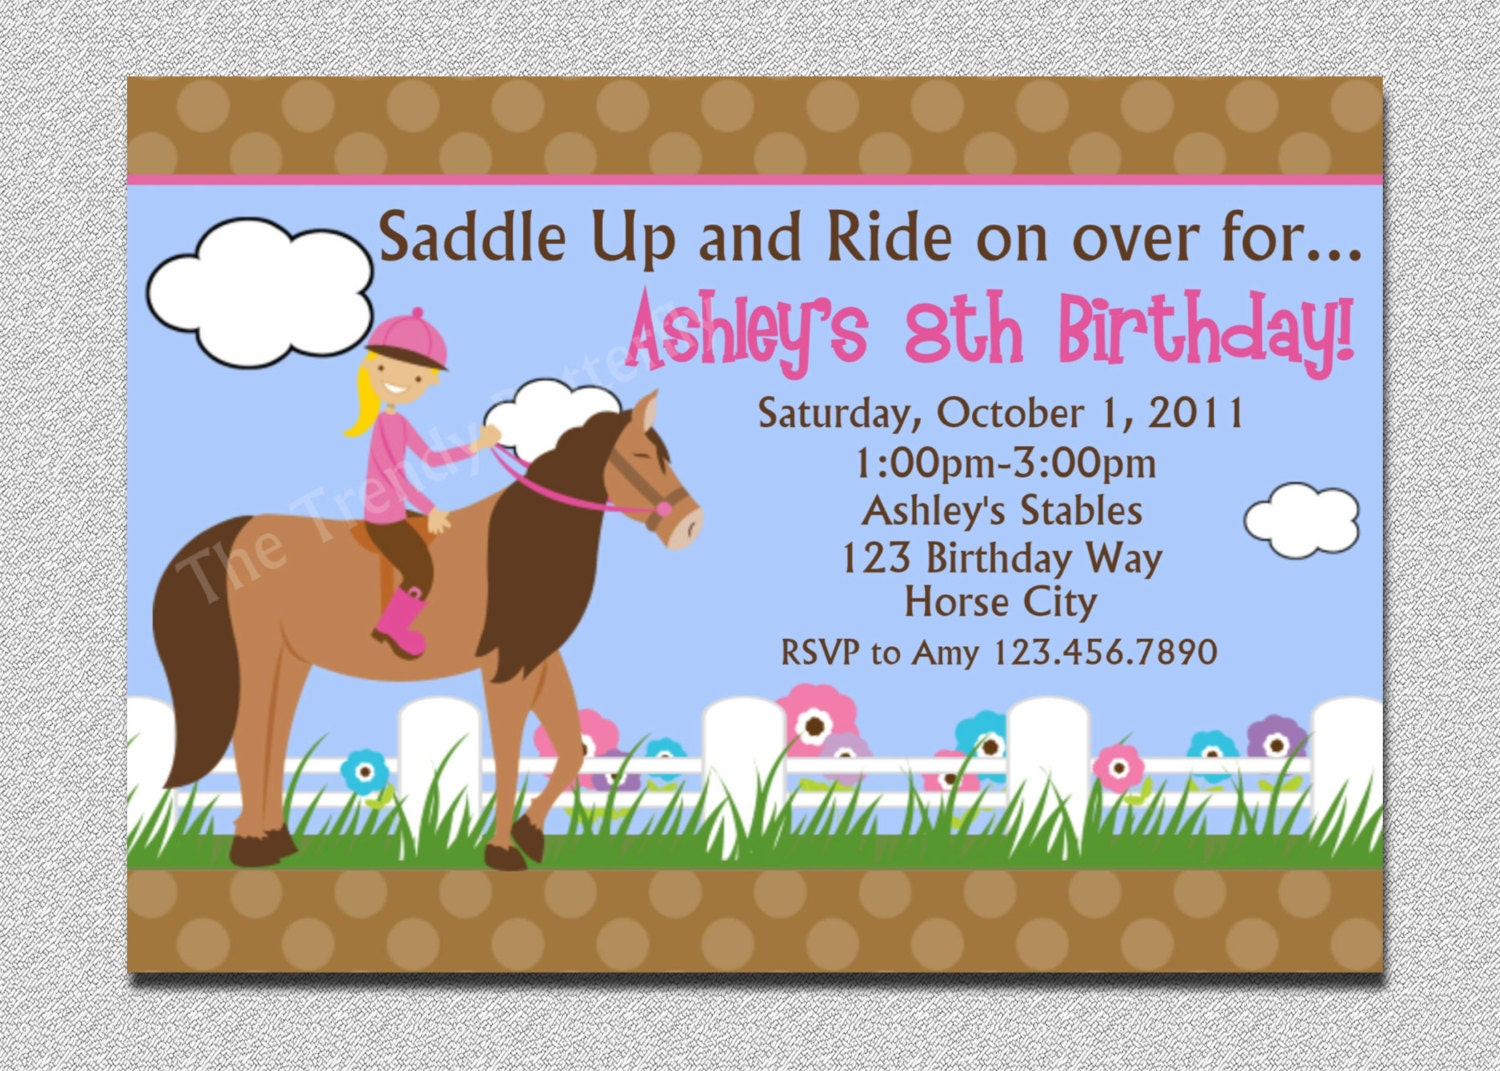 Horse Party Invitations is one of our best ideas you might choose for invitation design